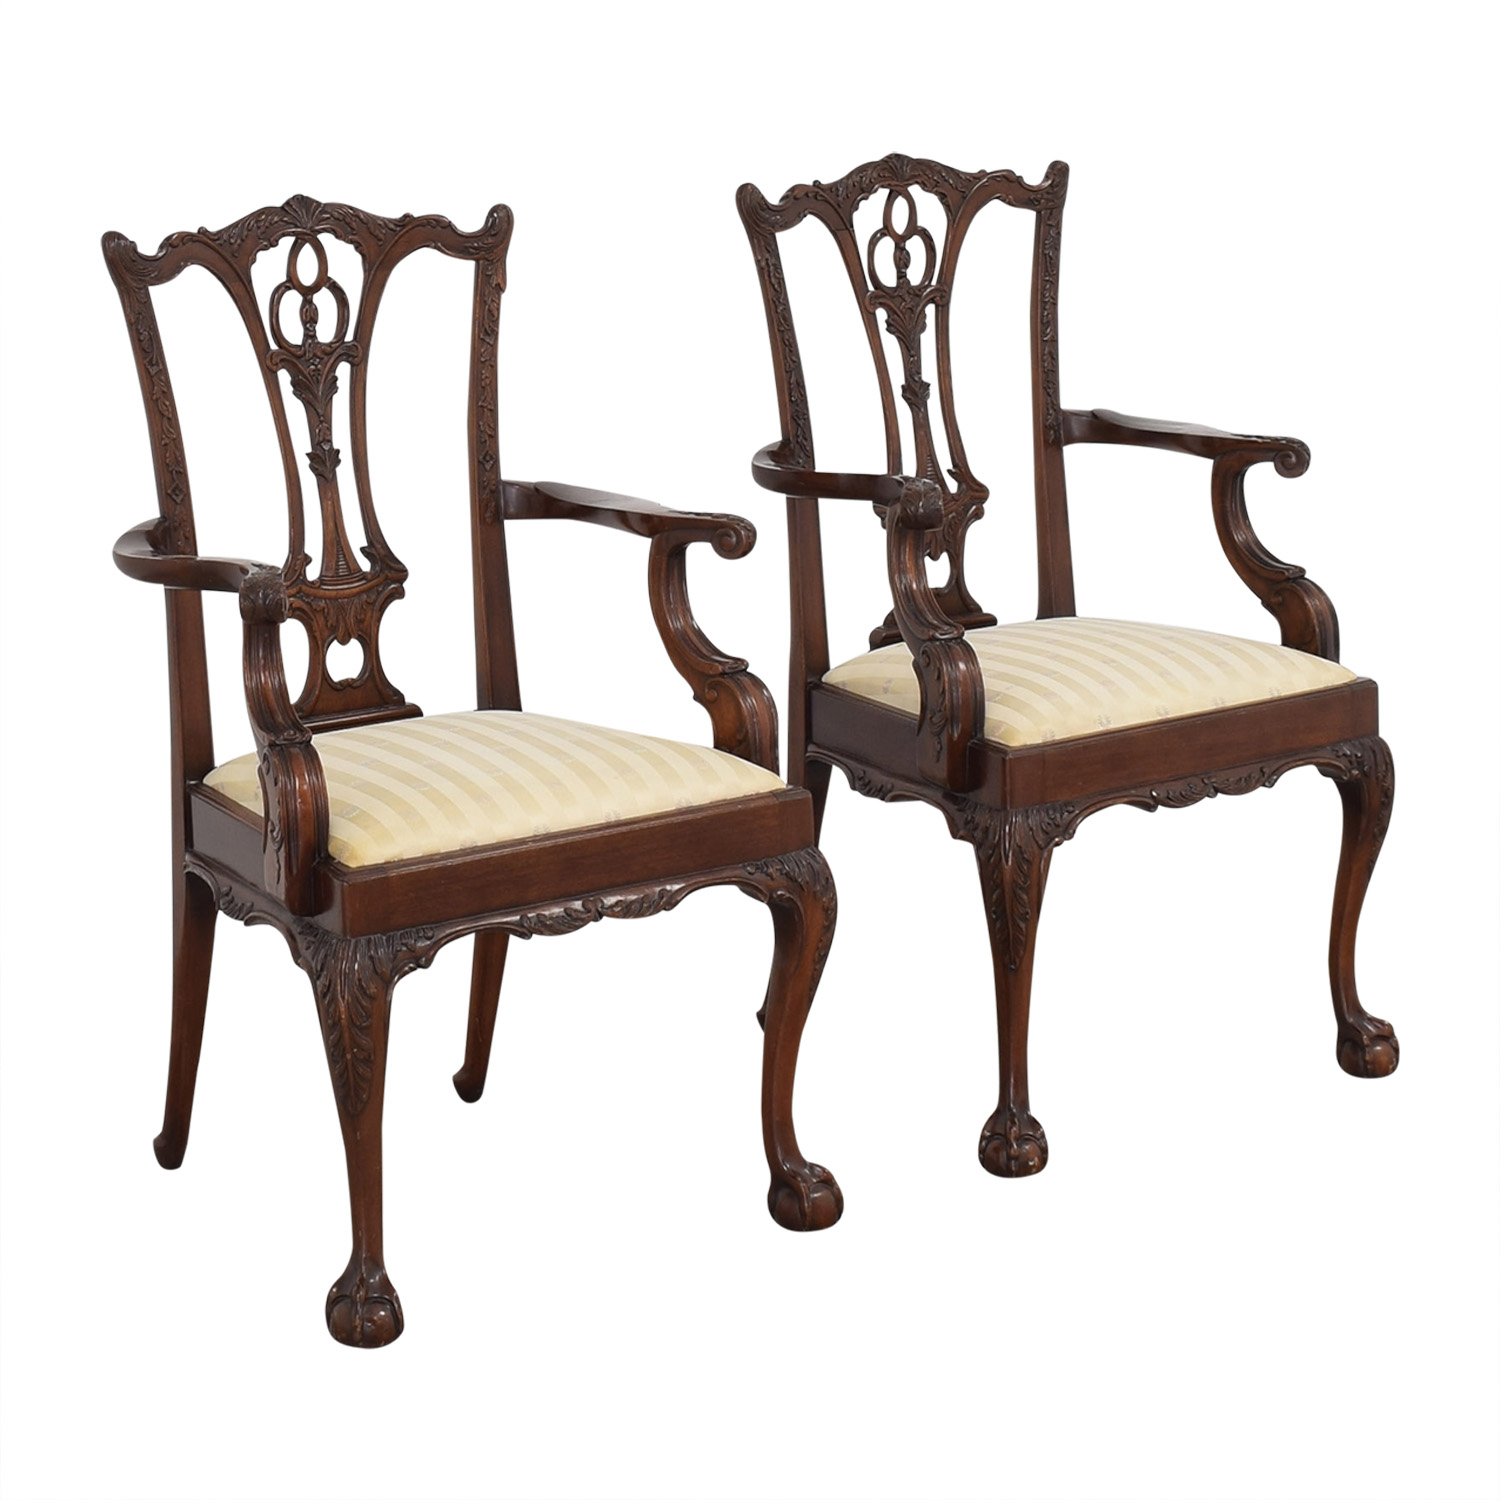 shop Macy's Hickory Furniture Upholstered Dining Chairs online